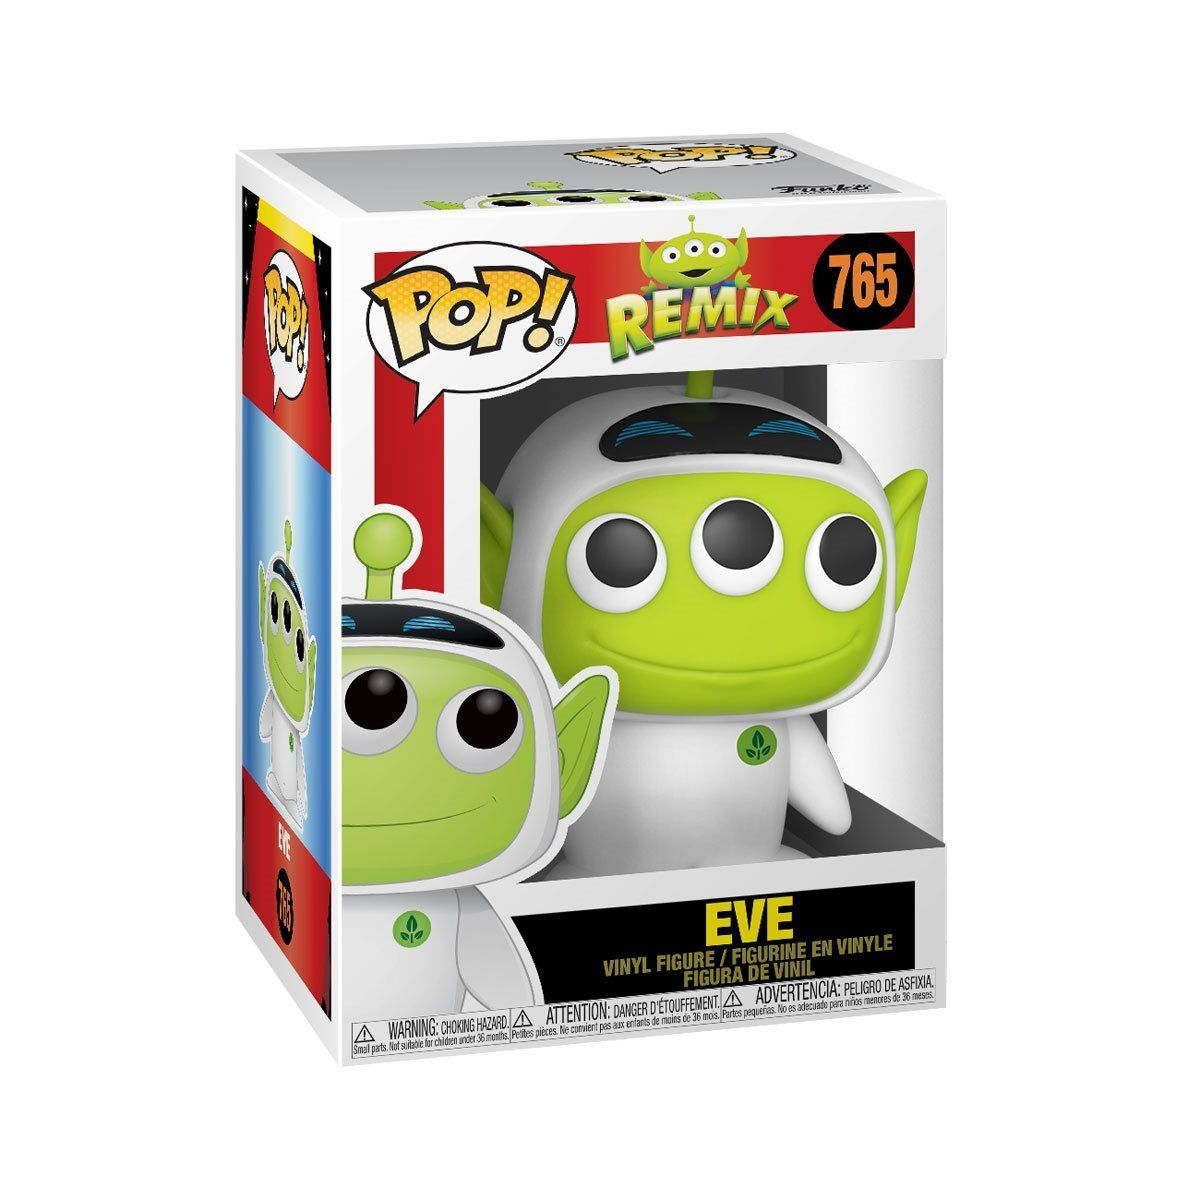 Eve #765 Wall-E Pixar Alien Remix Funko Pop! Disney [PRE-ORDER] Pop! Funko